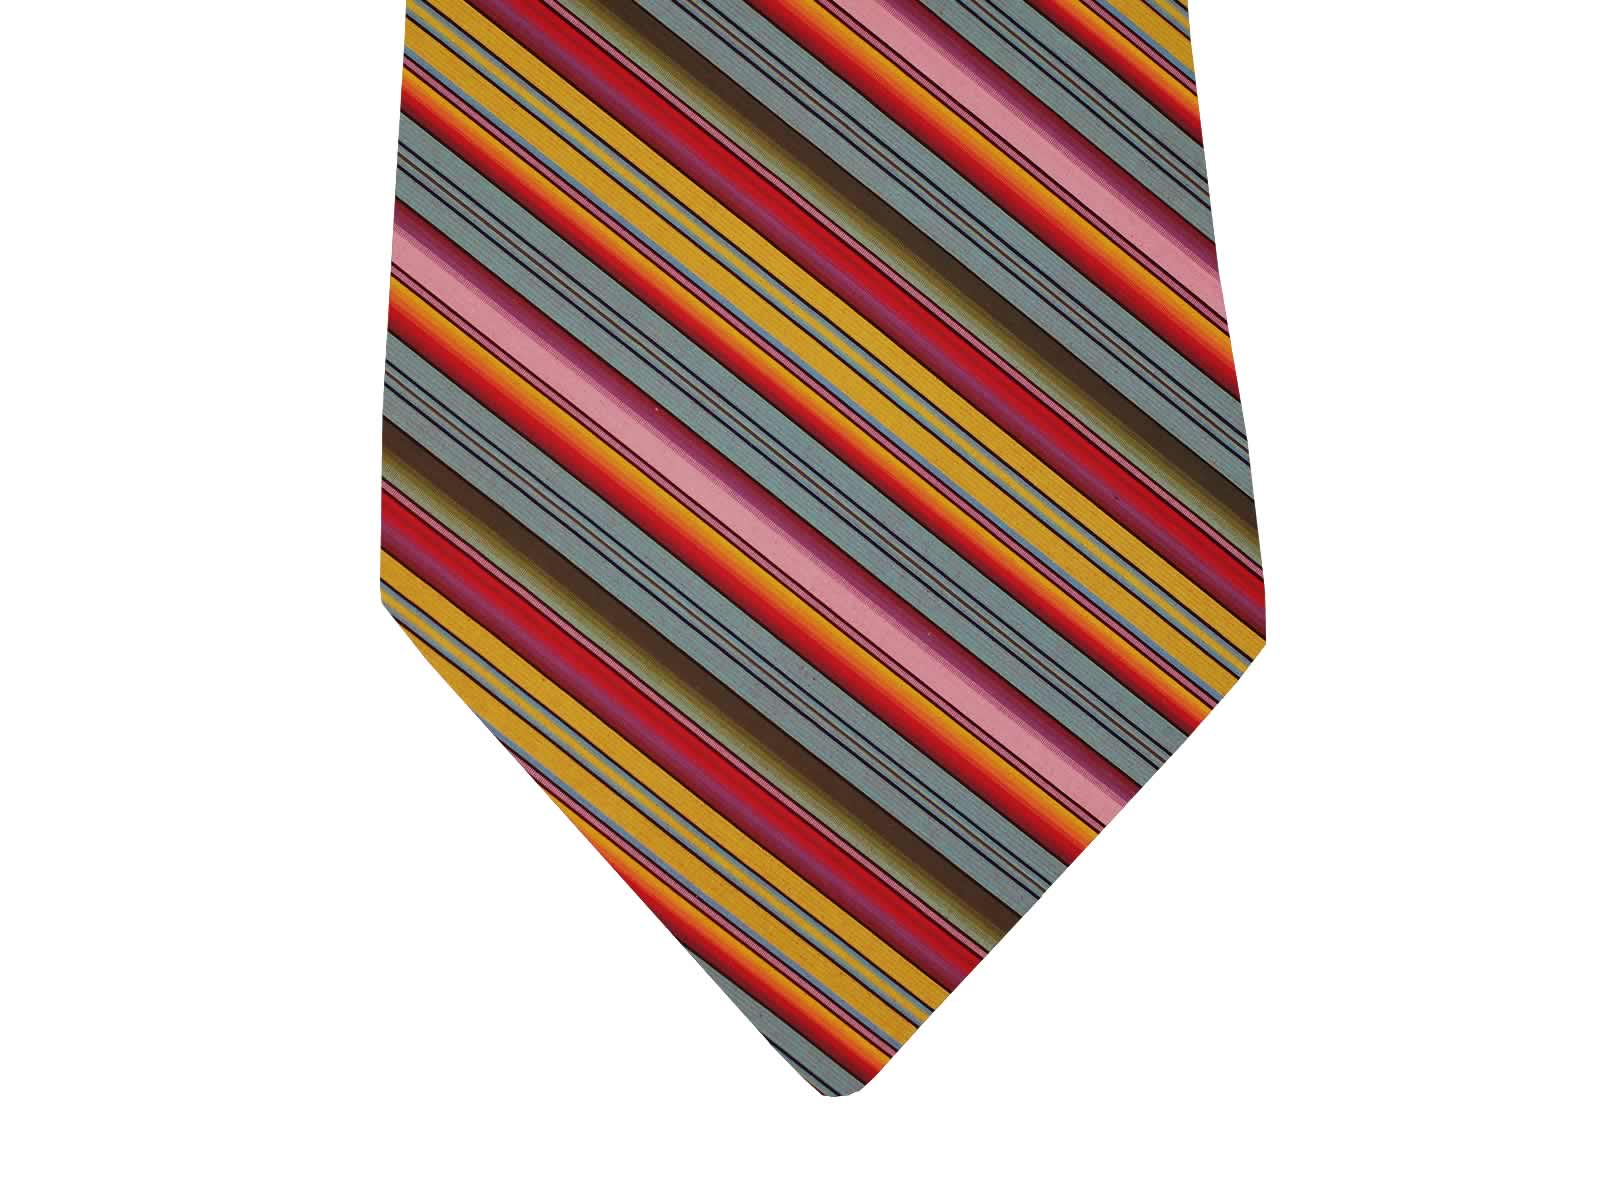 Vibrant Striped Tie from the Stripes Company blue, green, orange